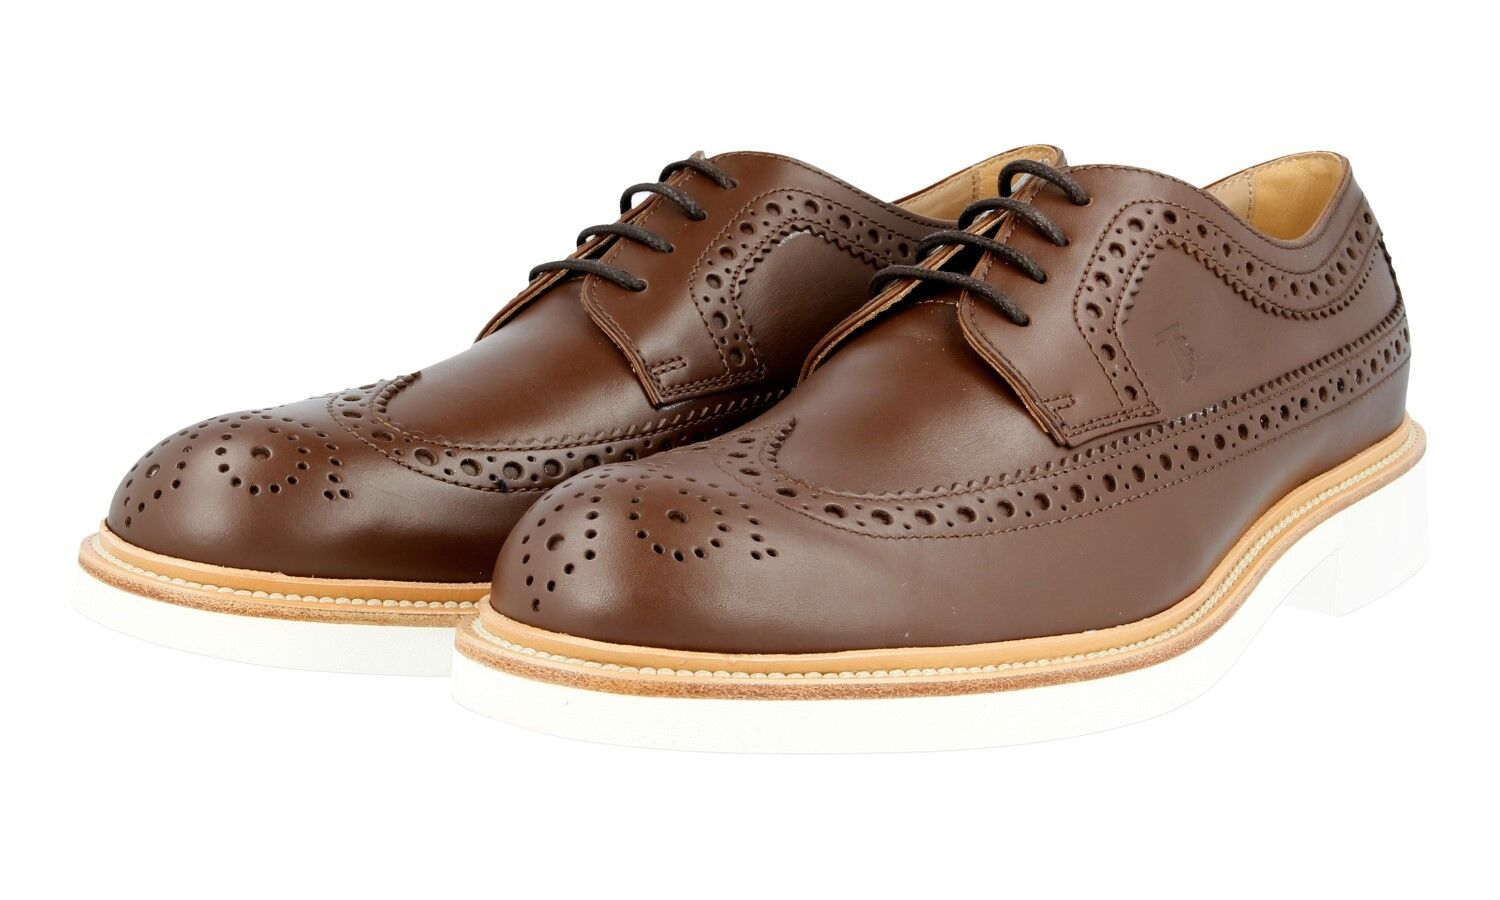 TODS LACE-UP WELT SEWN OXFORD WINGTIP DERBY SHOES BROWN NEW 8,5 42,5 43